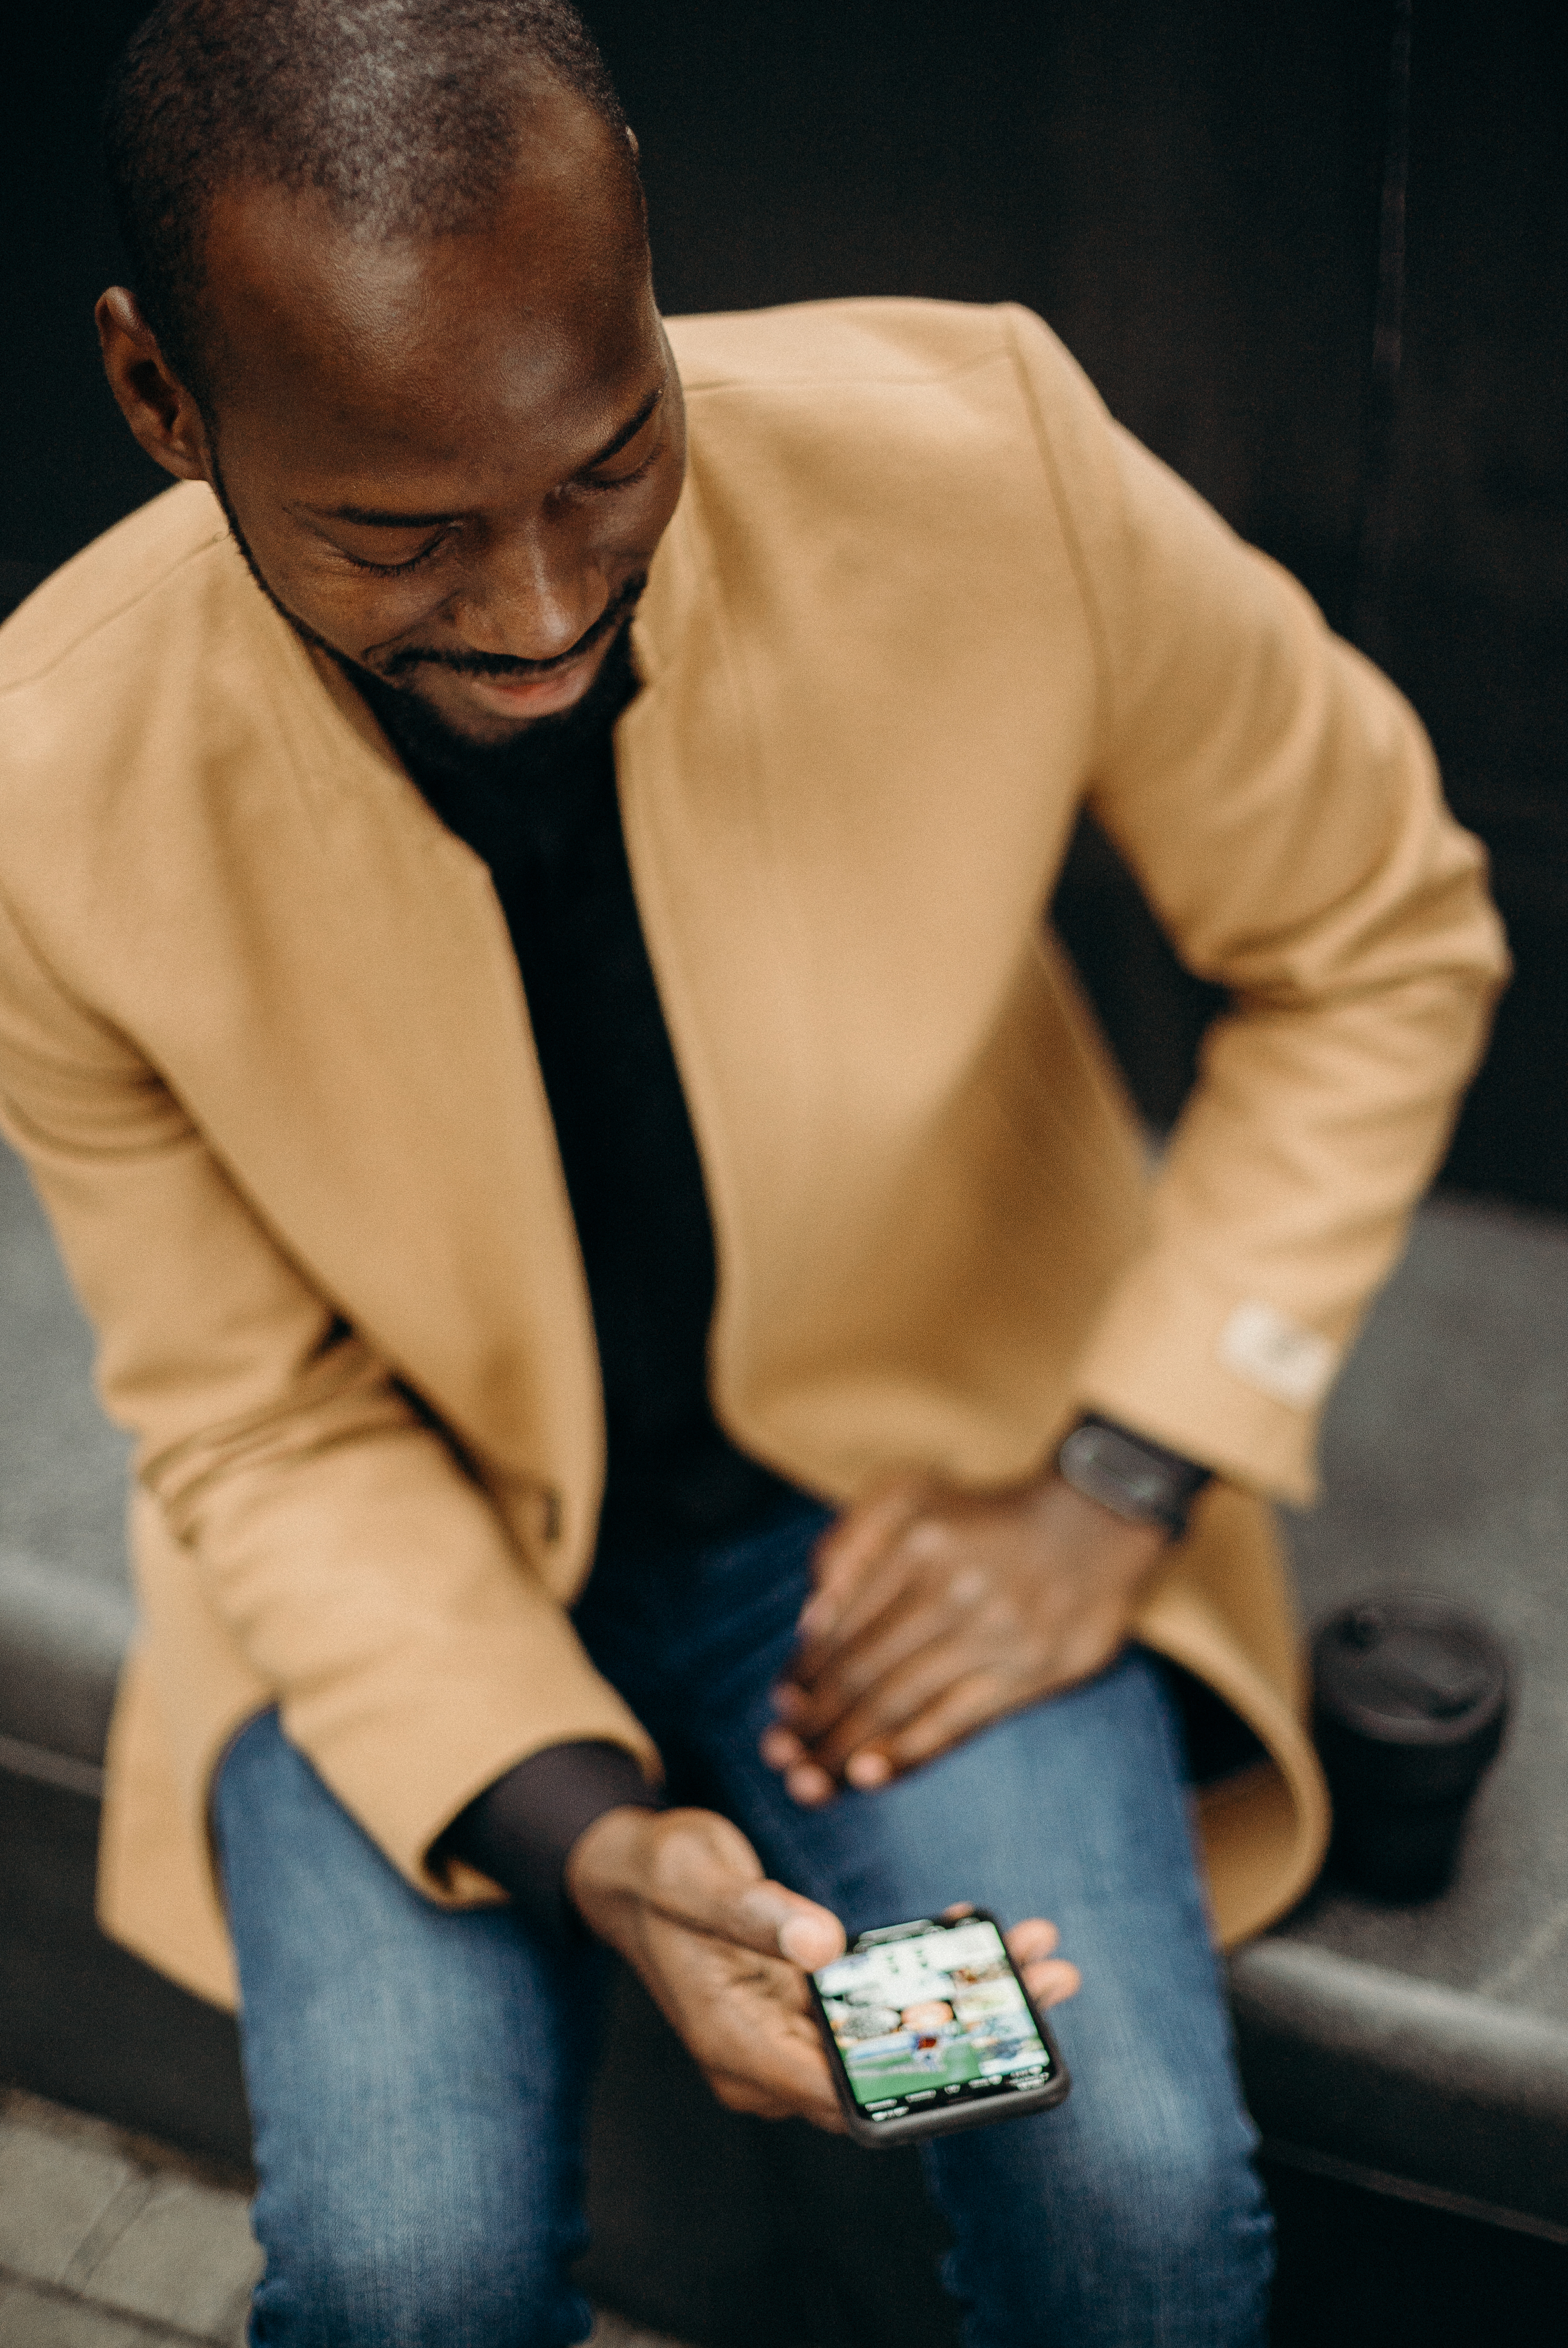 Man Using Android Smartphone